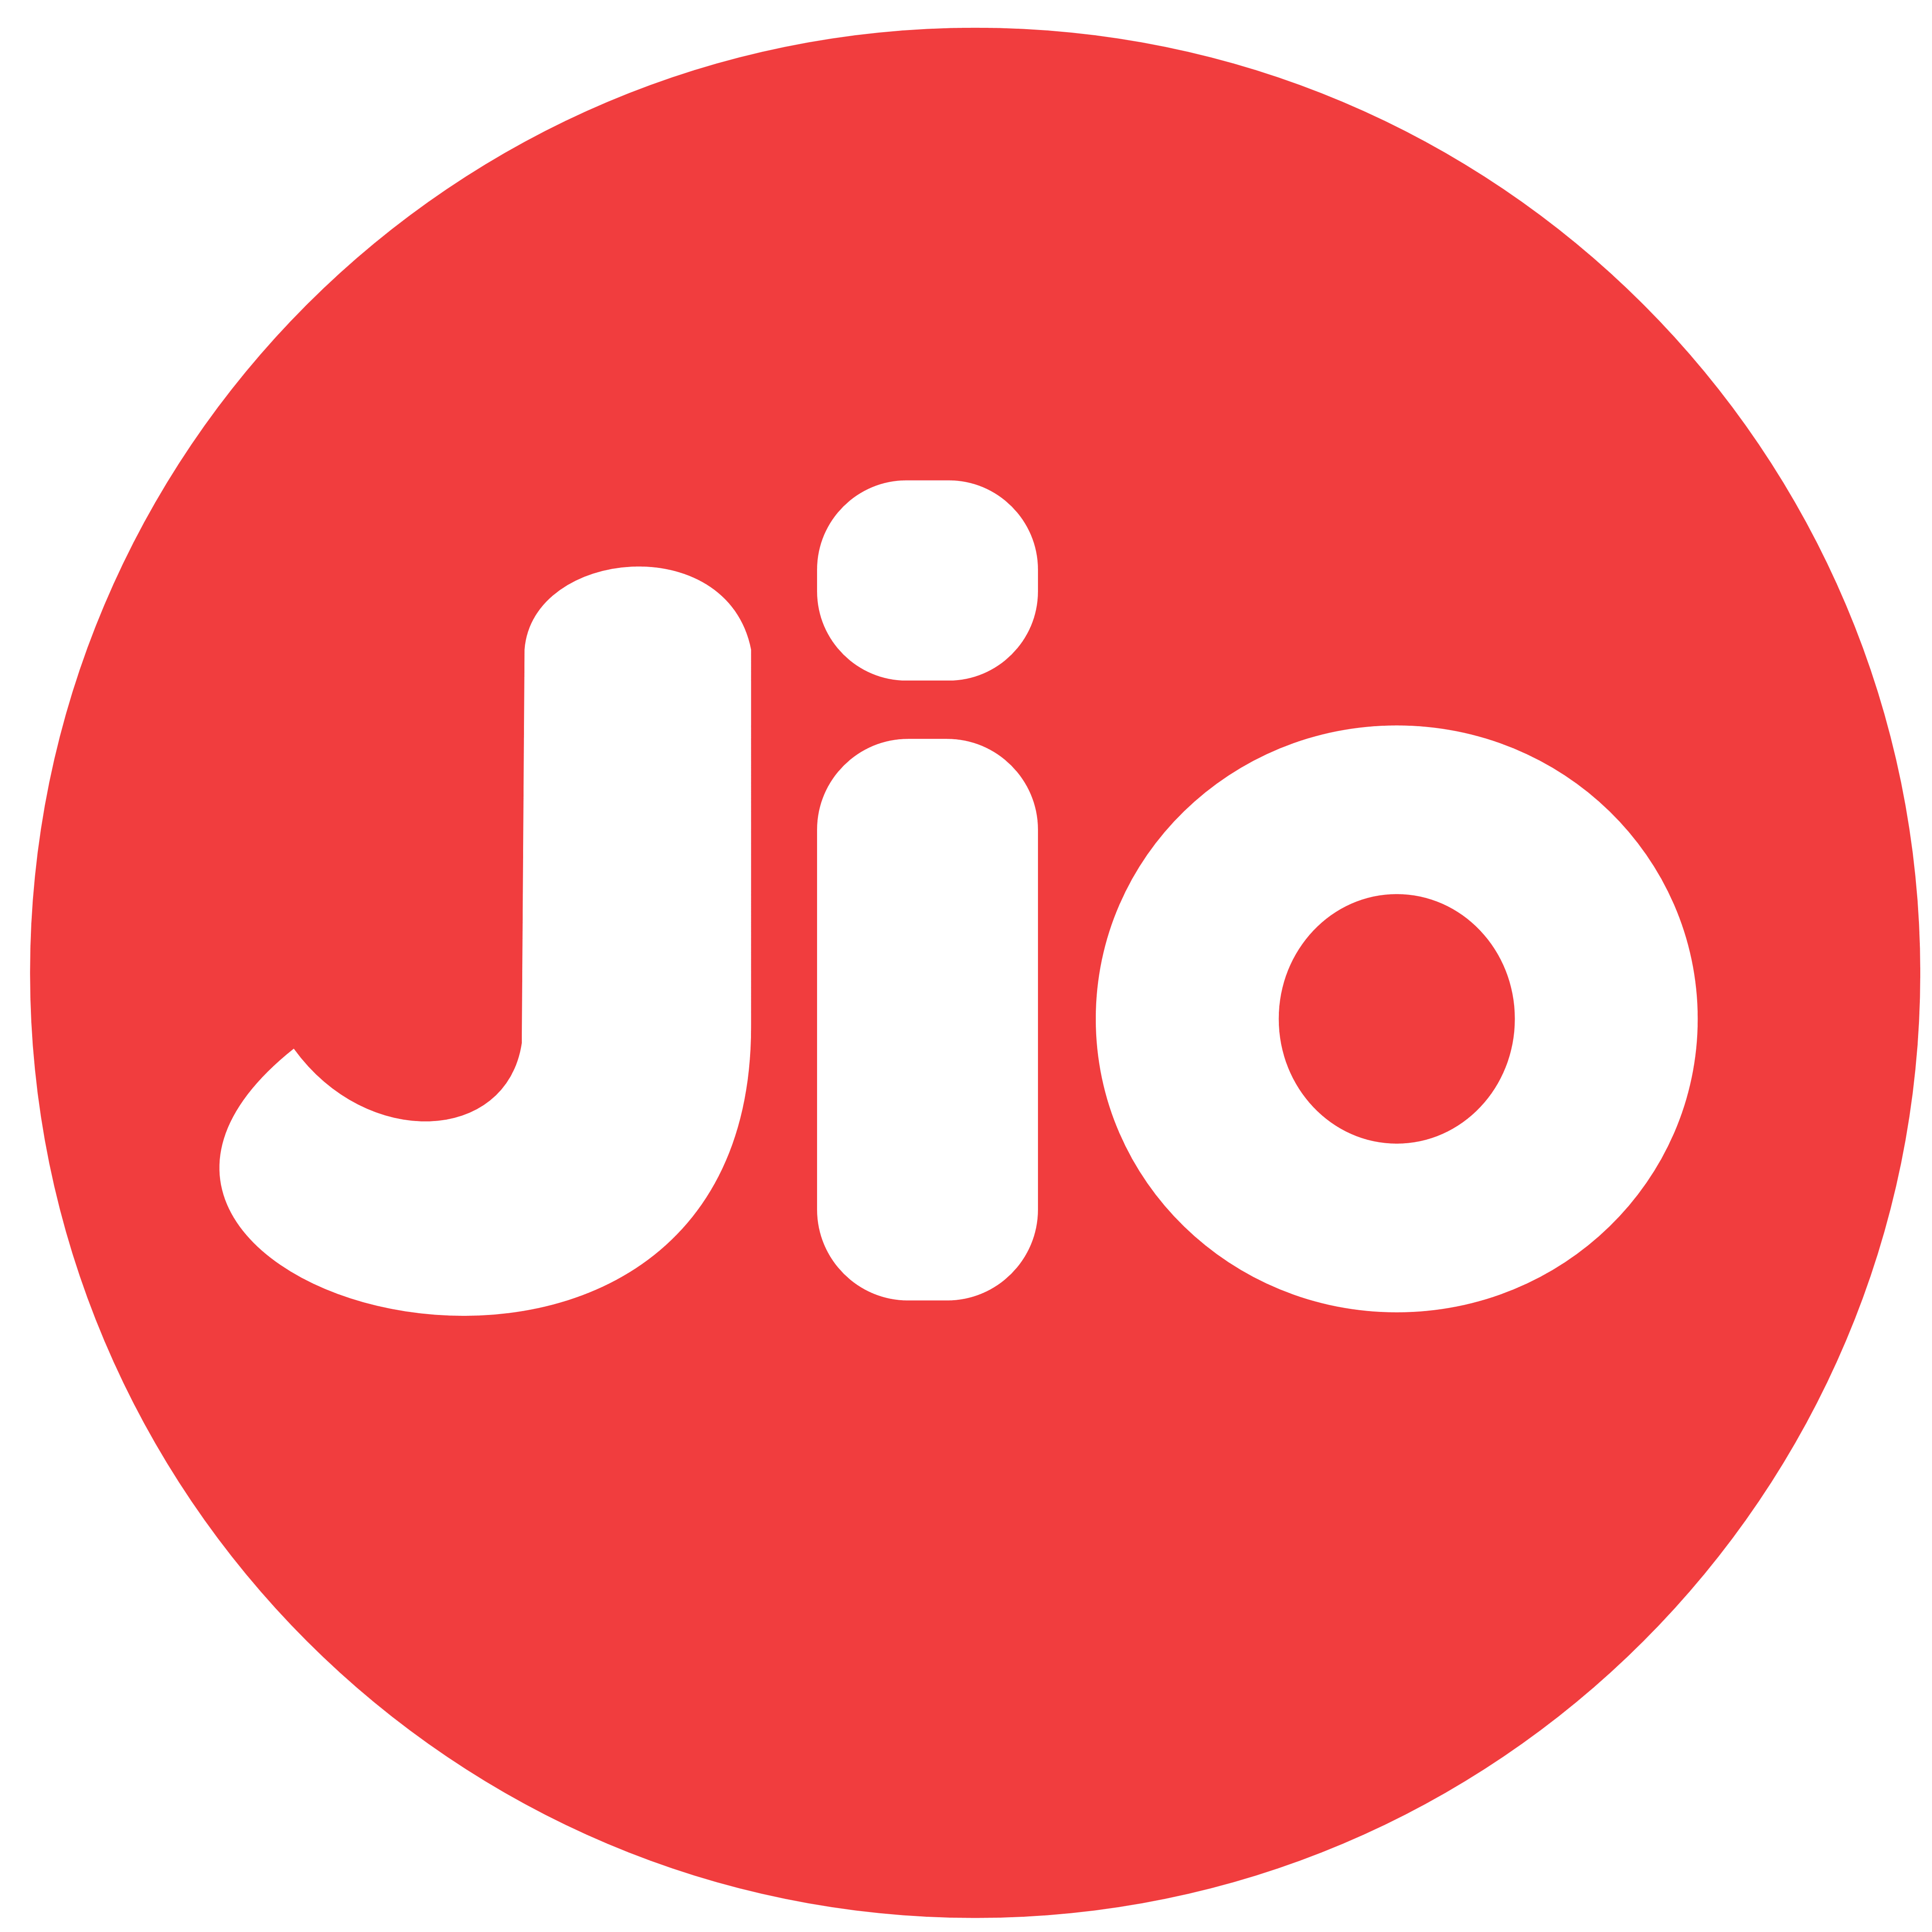 Jio Happy New Year 2018 Offer - Rs.199 and Rs.299 New Plans are Launched